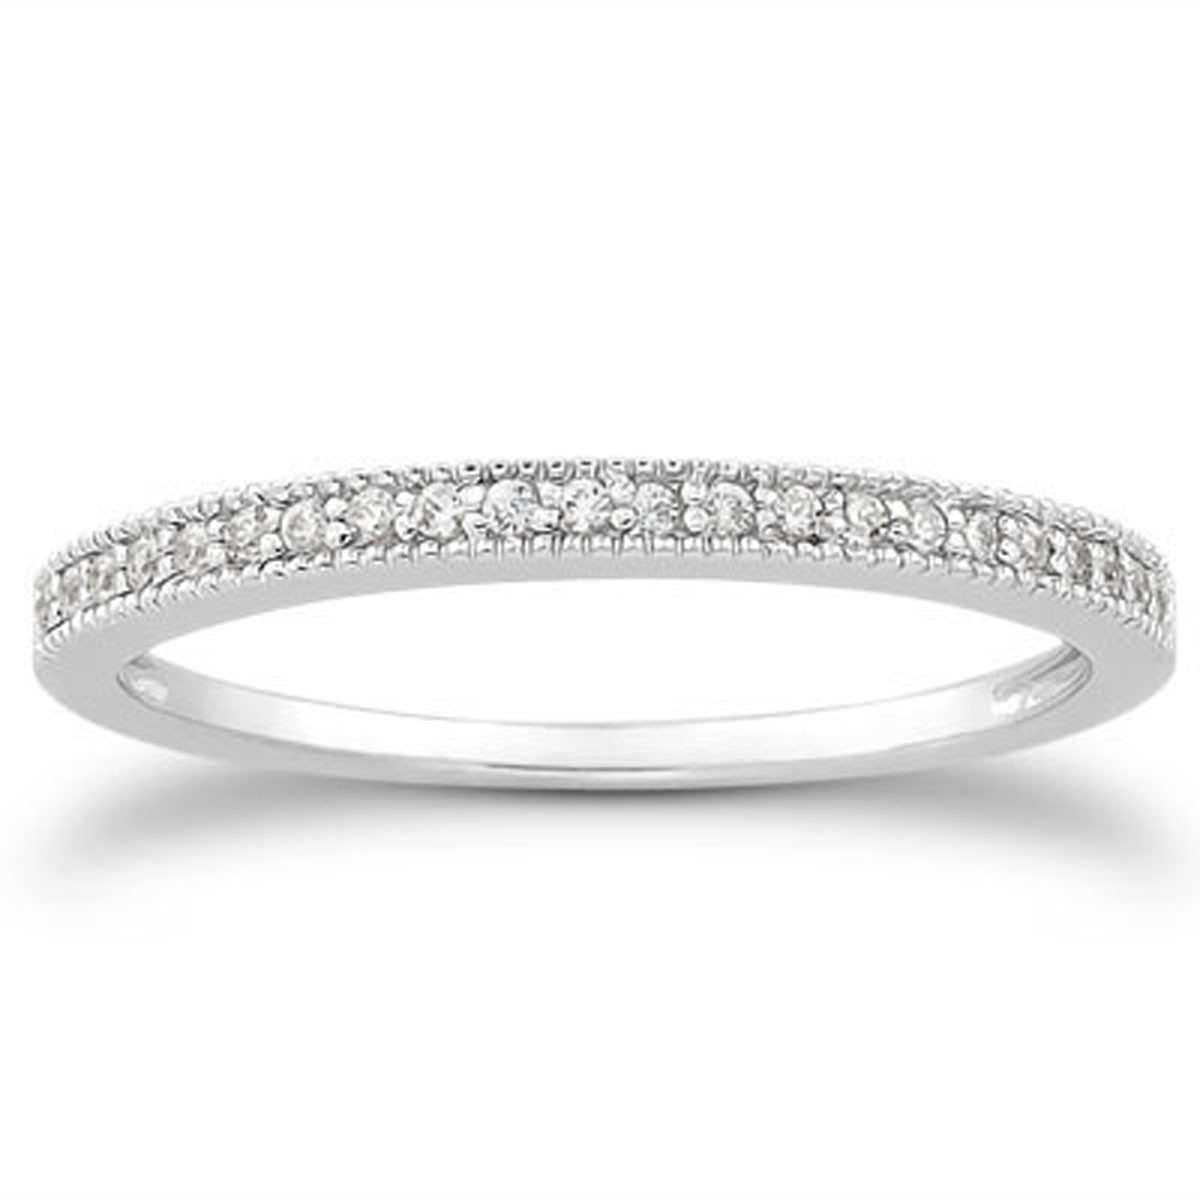 Pavé Bands: Diamond Micro- Pave Diamond Milgrain Wedding Ring Band In